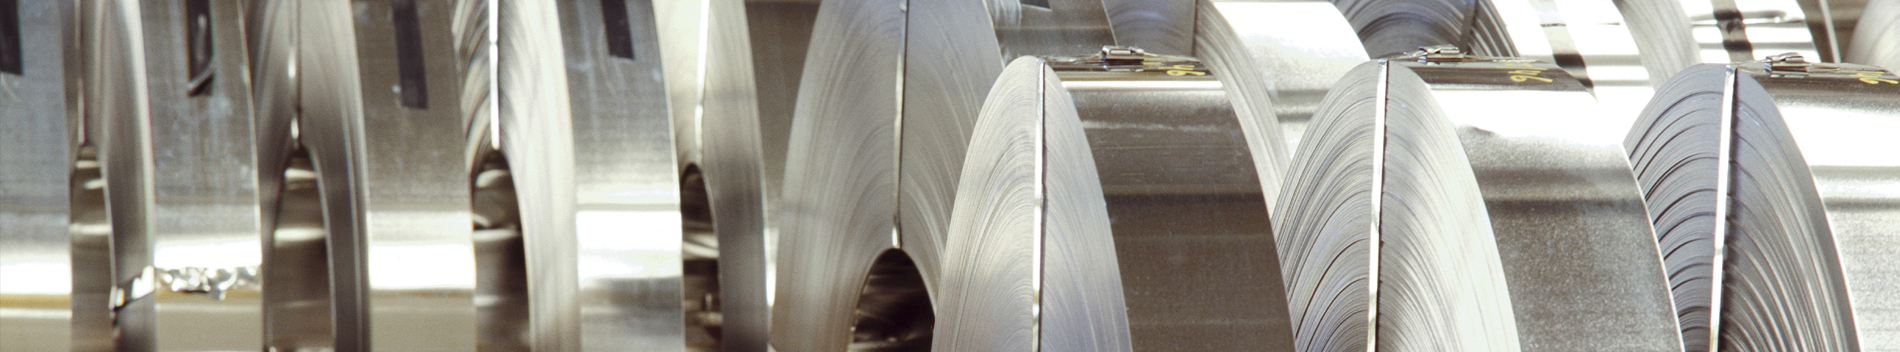 Nickel Alloys, Stainless steel & Titanium Drainage